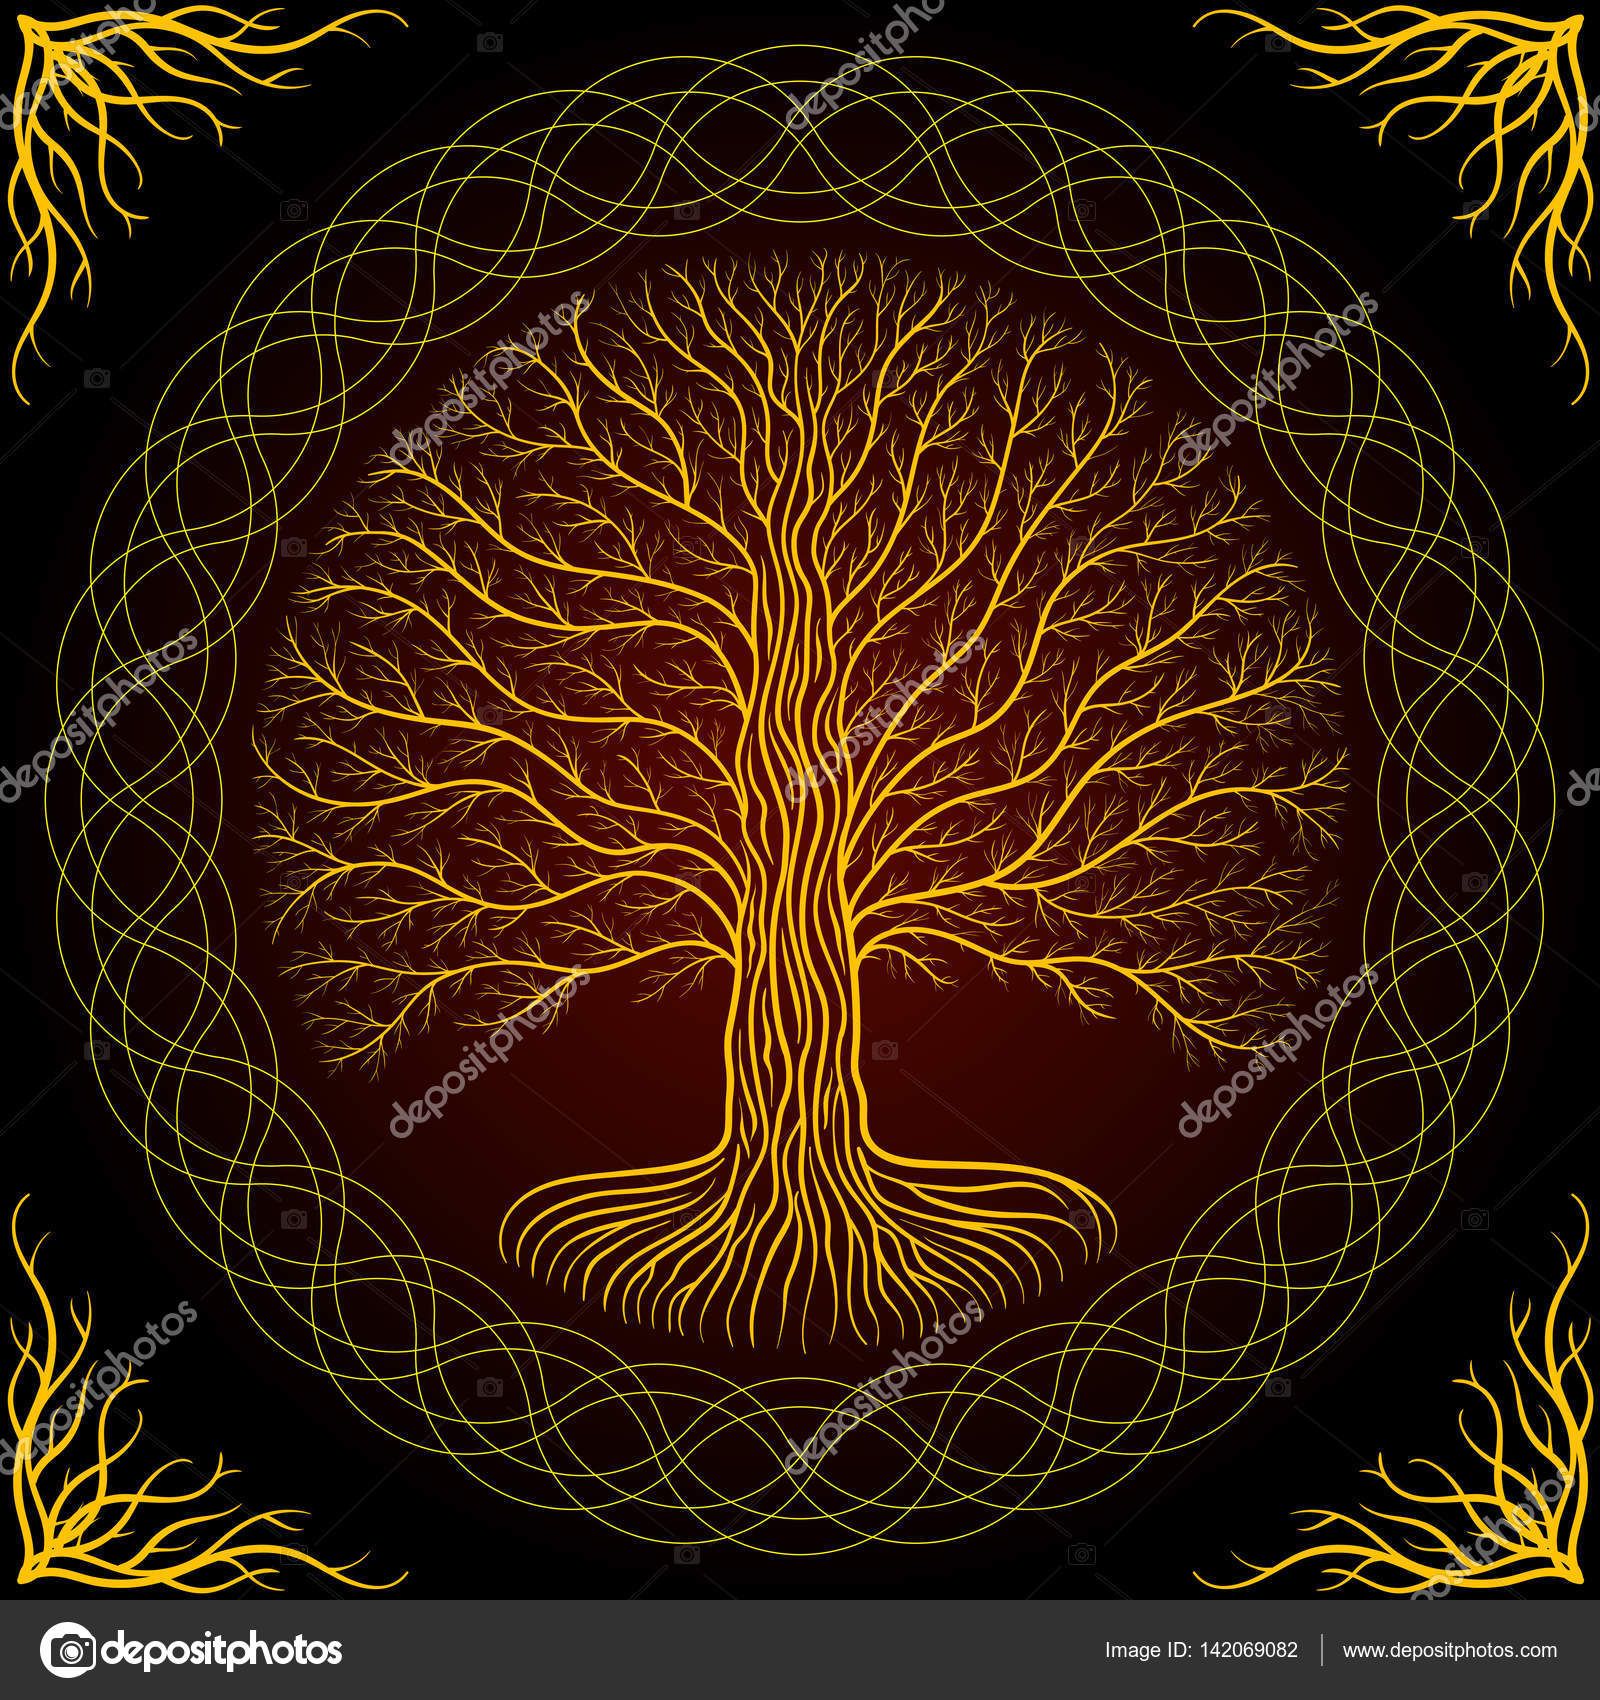 Order of Yggdrasil in the North